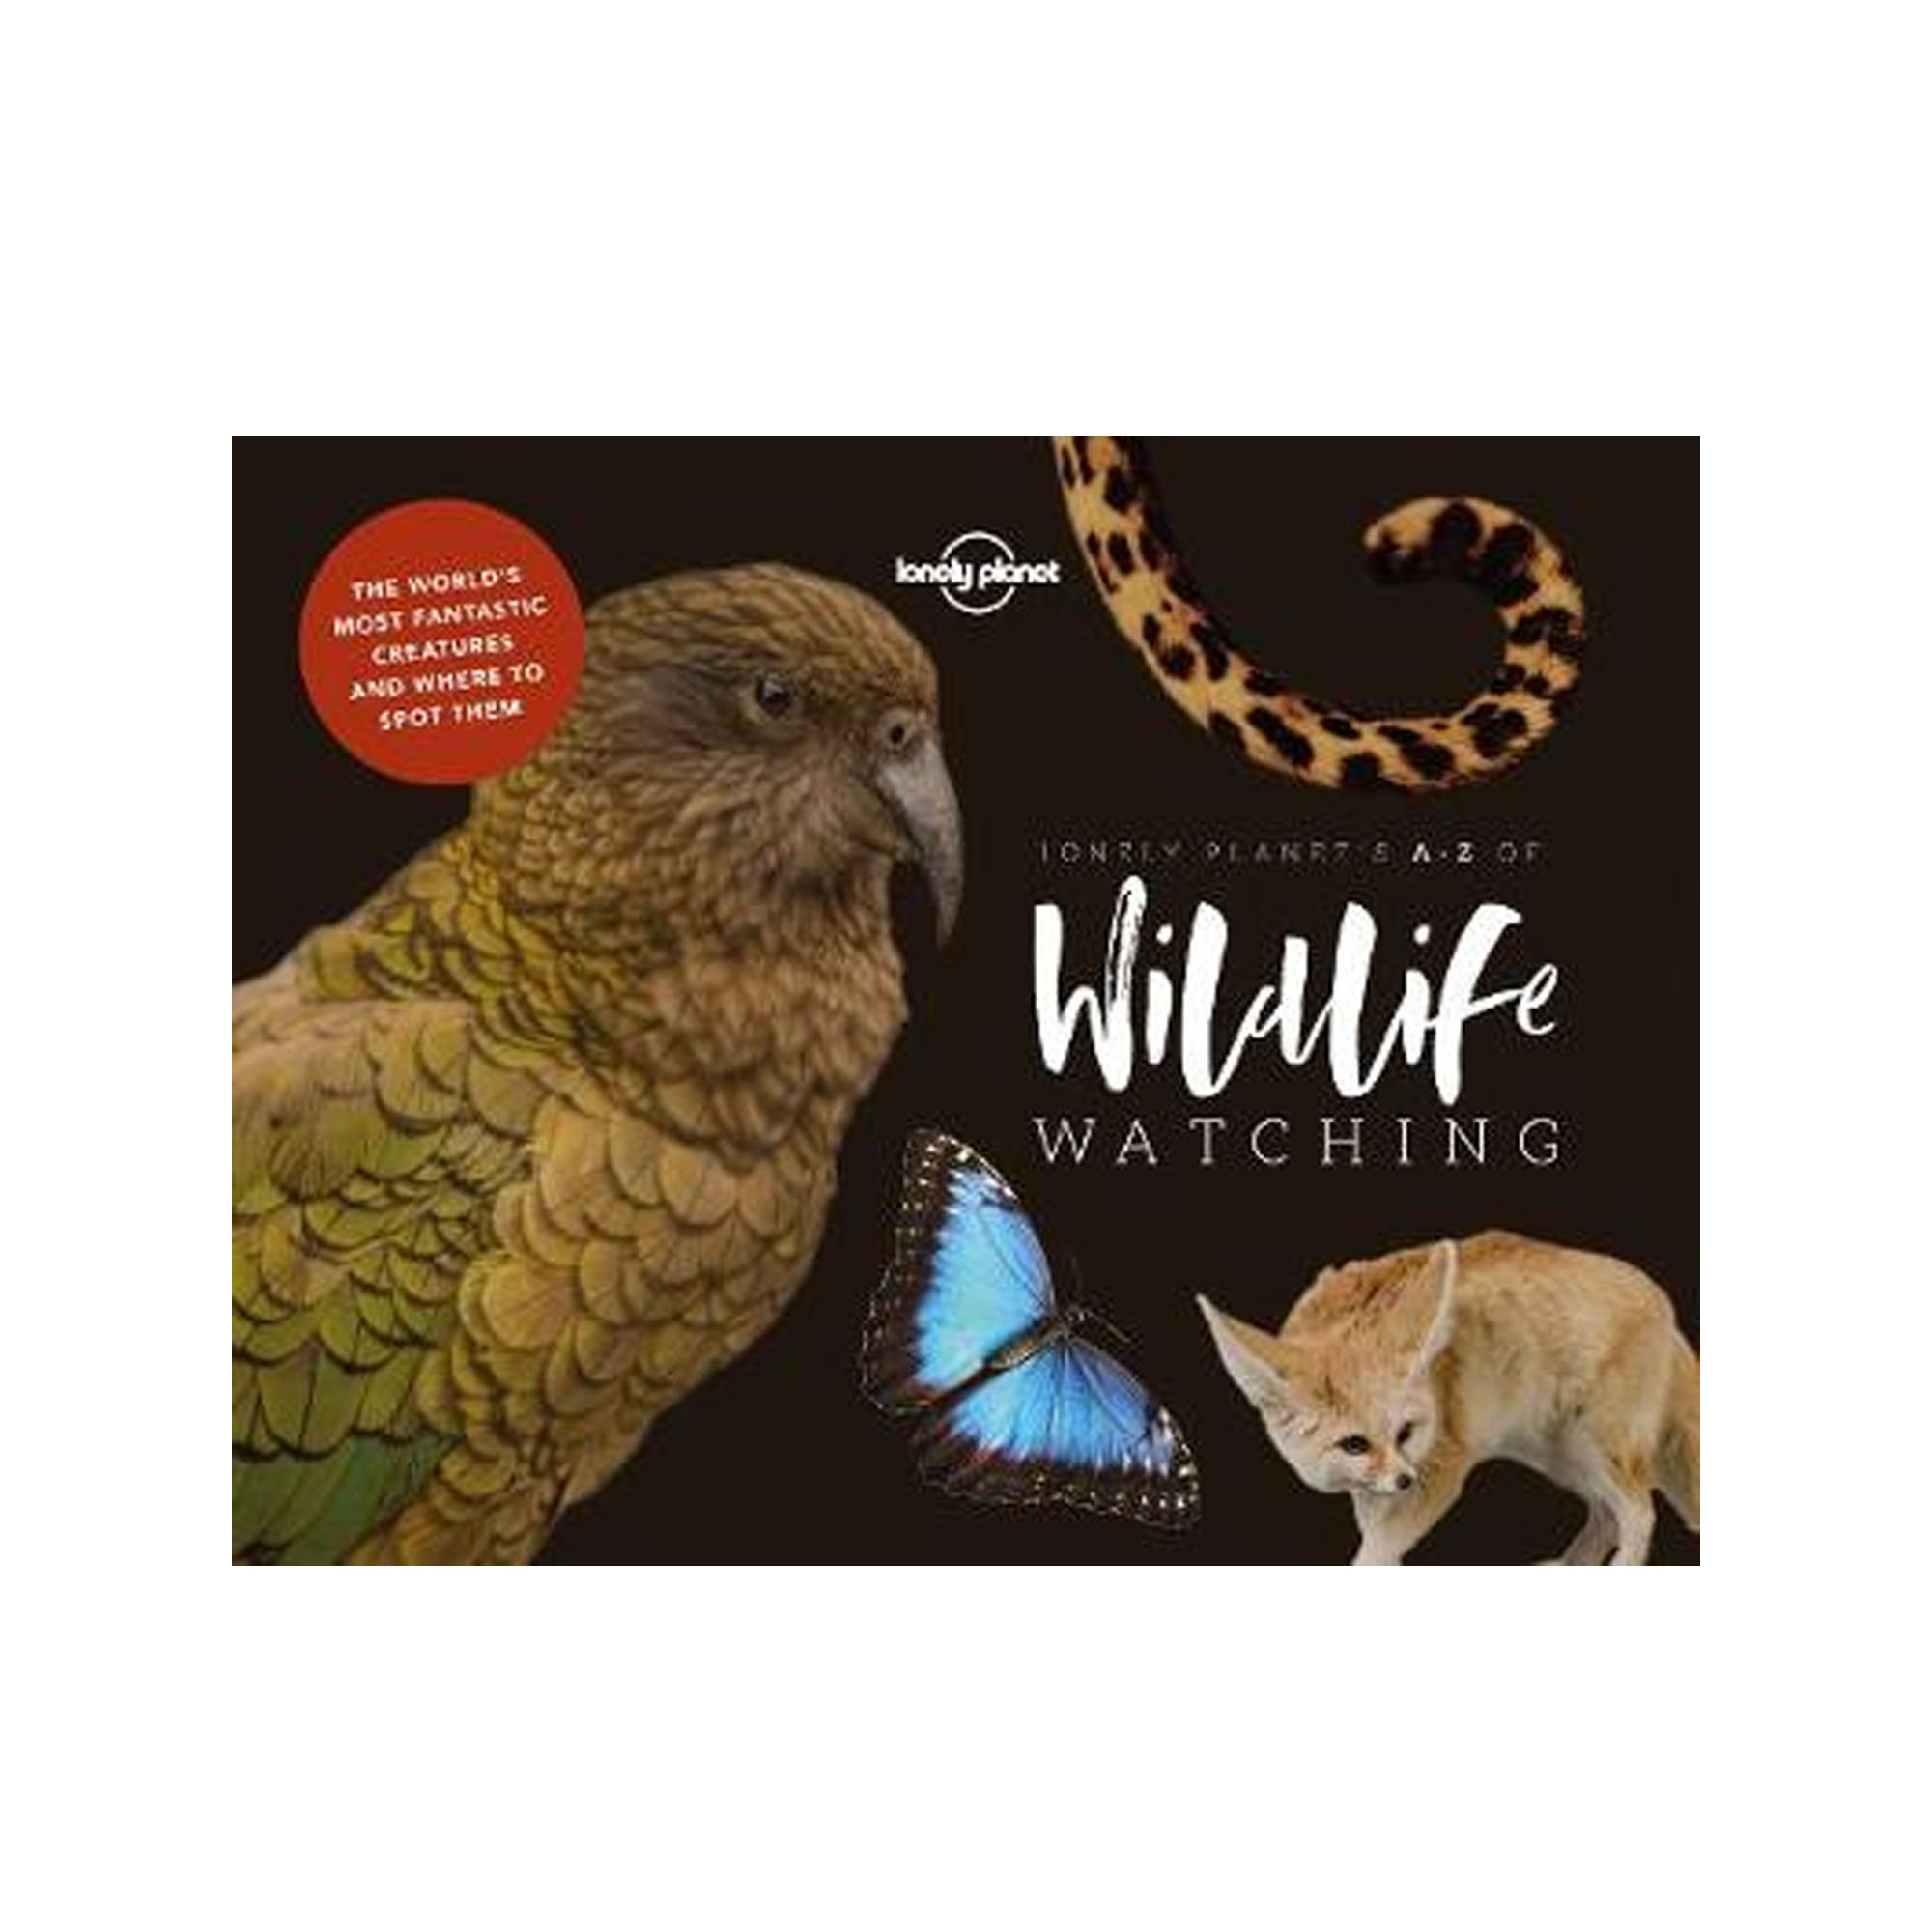 A-Z of Wildlife Watching